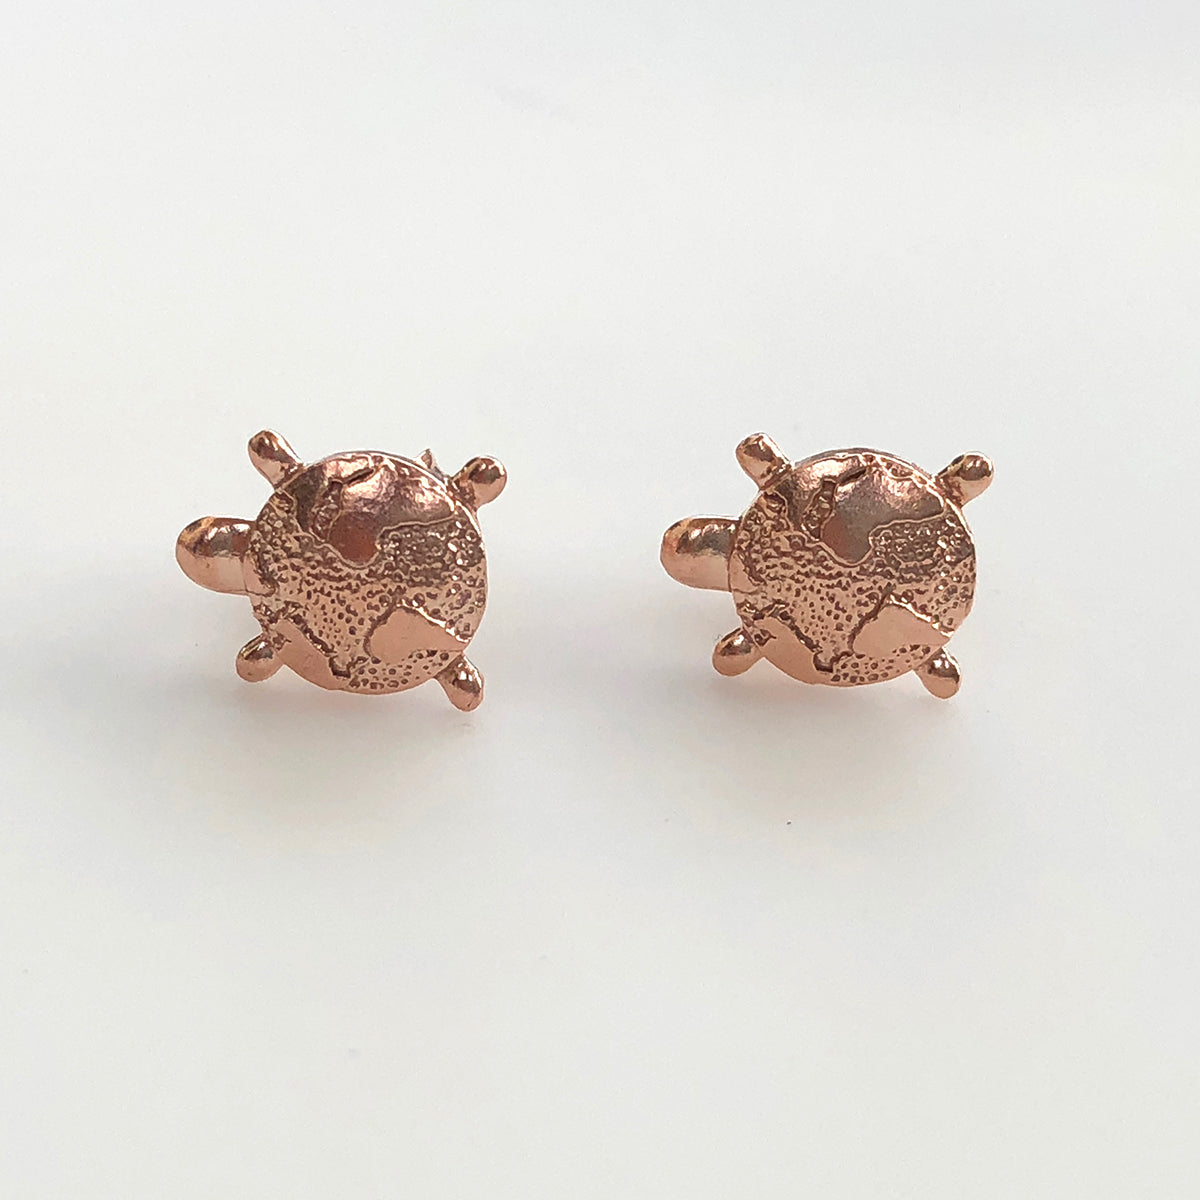 gold turtle with earrings stud products rhinestones atti original in collections tortoise animal cute sea